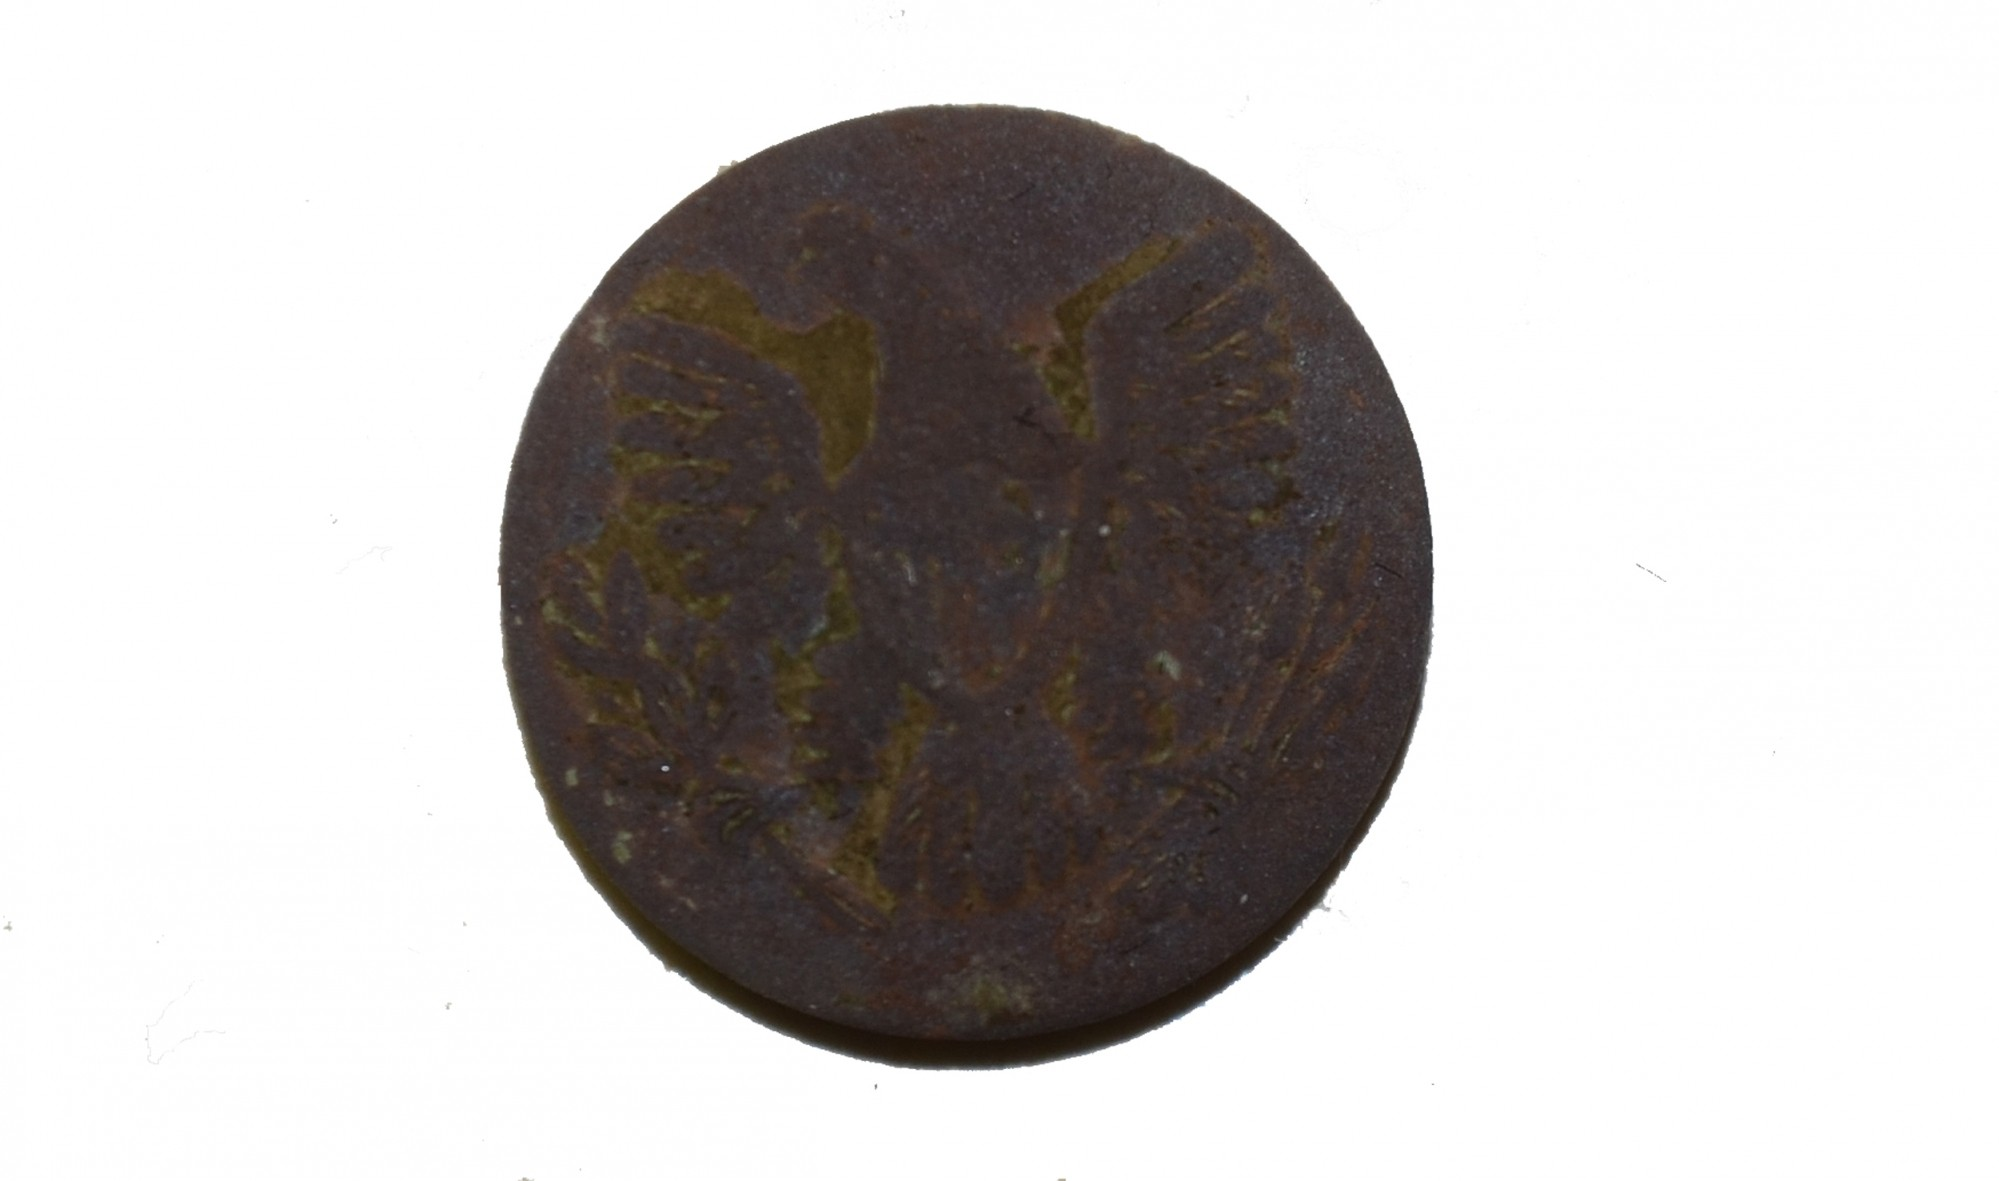 US GENERAL SERVICE EAGLE JACKET BUTTON FOUND AT CULP'S HILL, GETTYSBURG